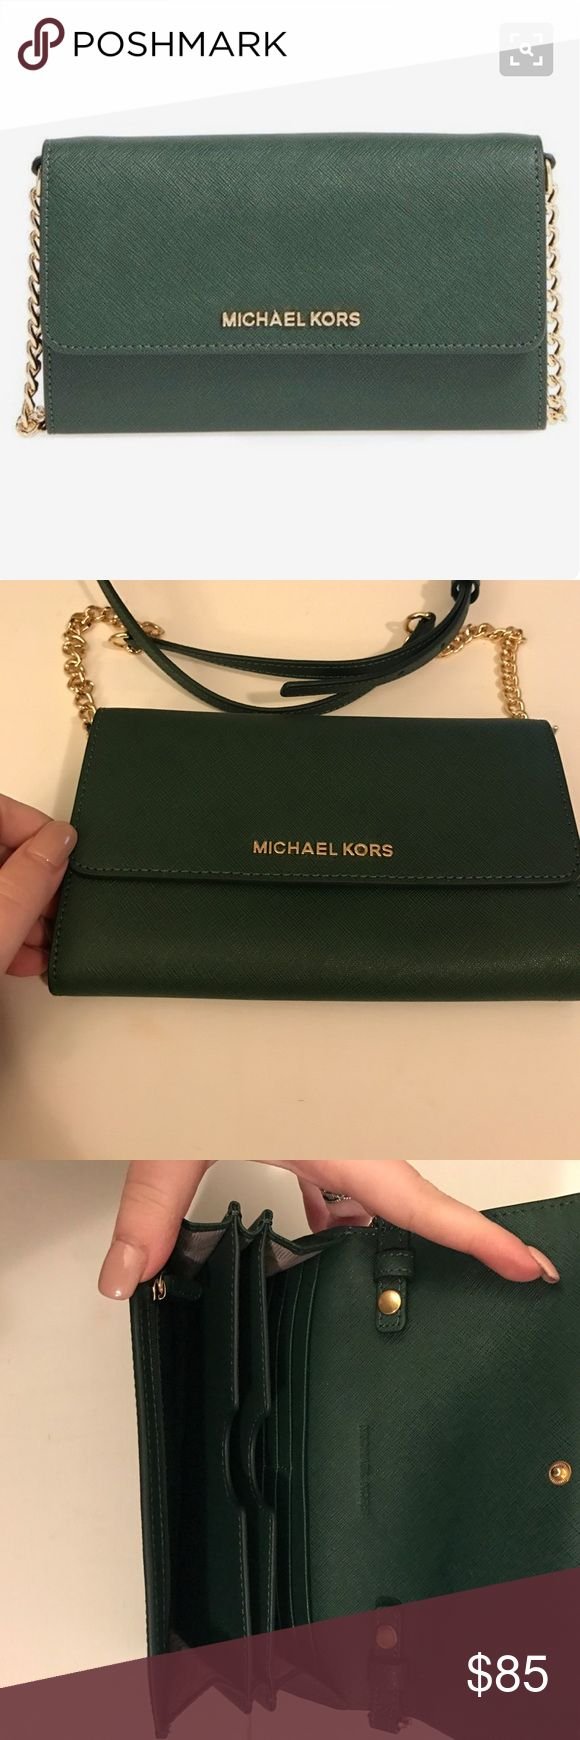 NWOT Michael Kors Large Phone Travel Crossbody Brand new never used. Purchased from Nordstrom around Christmas time. The color is moss green. Gold hardware. Card and phone slots. Detachable strap.  SKU: 8539795 Made of saffiano leather. Snap closure. Adjustable crossbody strap with chain detail. Exterior back slip pocket. Signature logo hardware detail in front. Lined interior. Interior zip pocket. Measurements: Bottom Width: 7 in Depth: 1 1⁄2 in Height: 5 in Strap Length: 50 in Strap Drop…